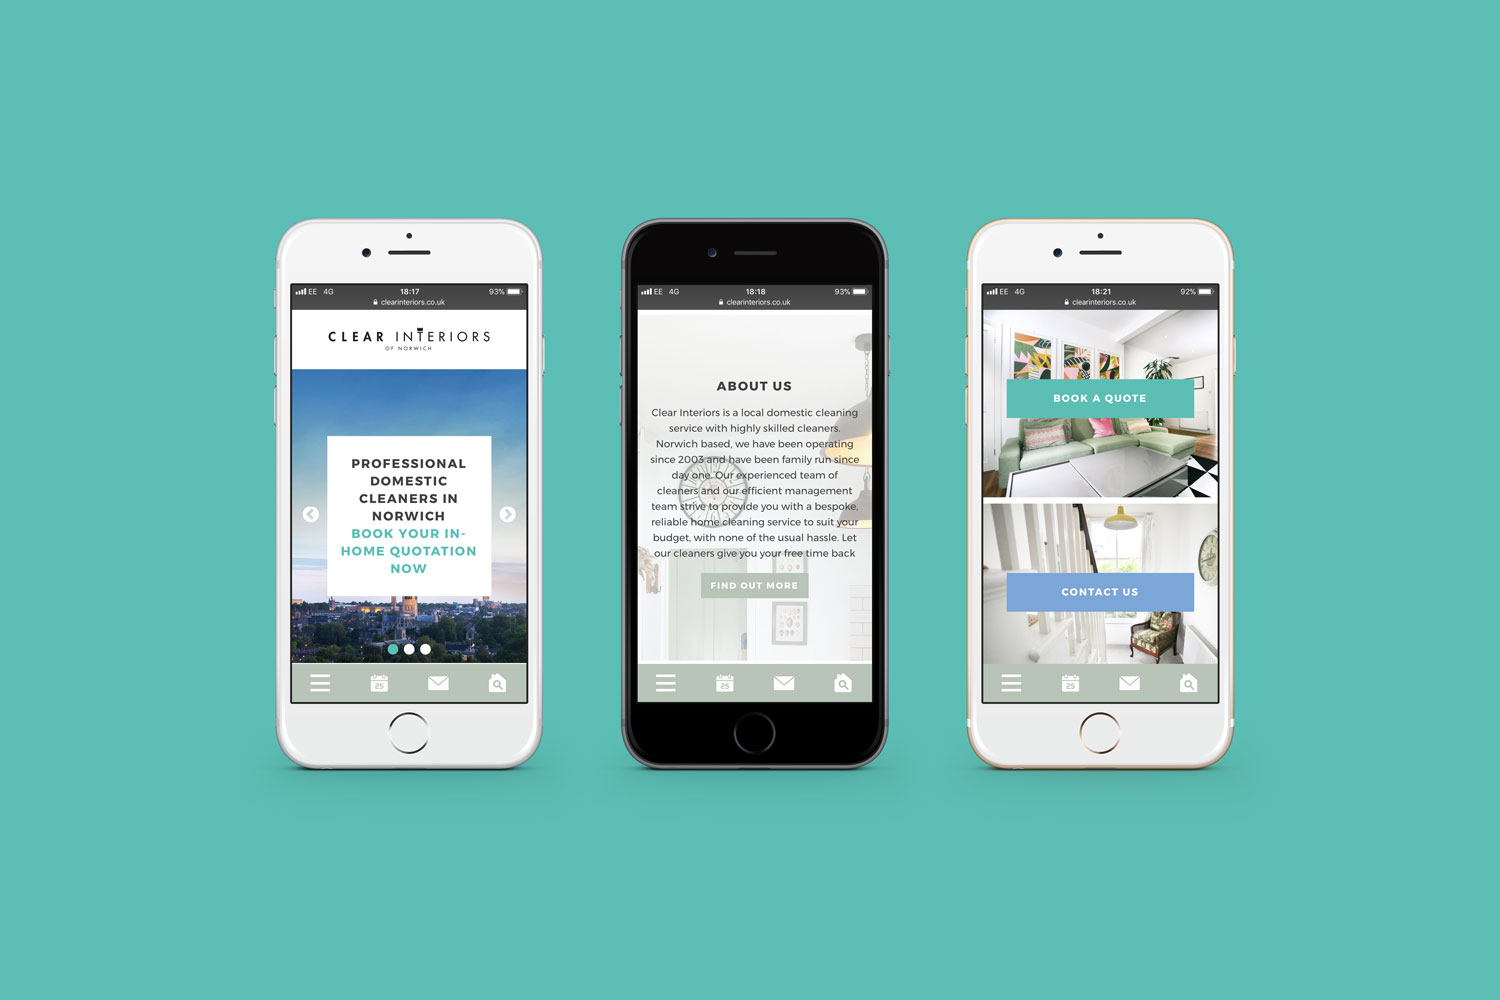 responsive-website-design-for-mobile-iphone-norwich-agency.jpg